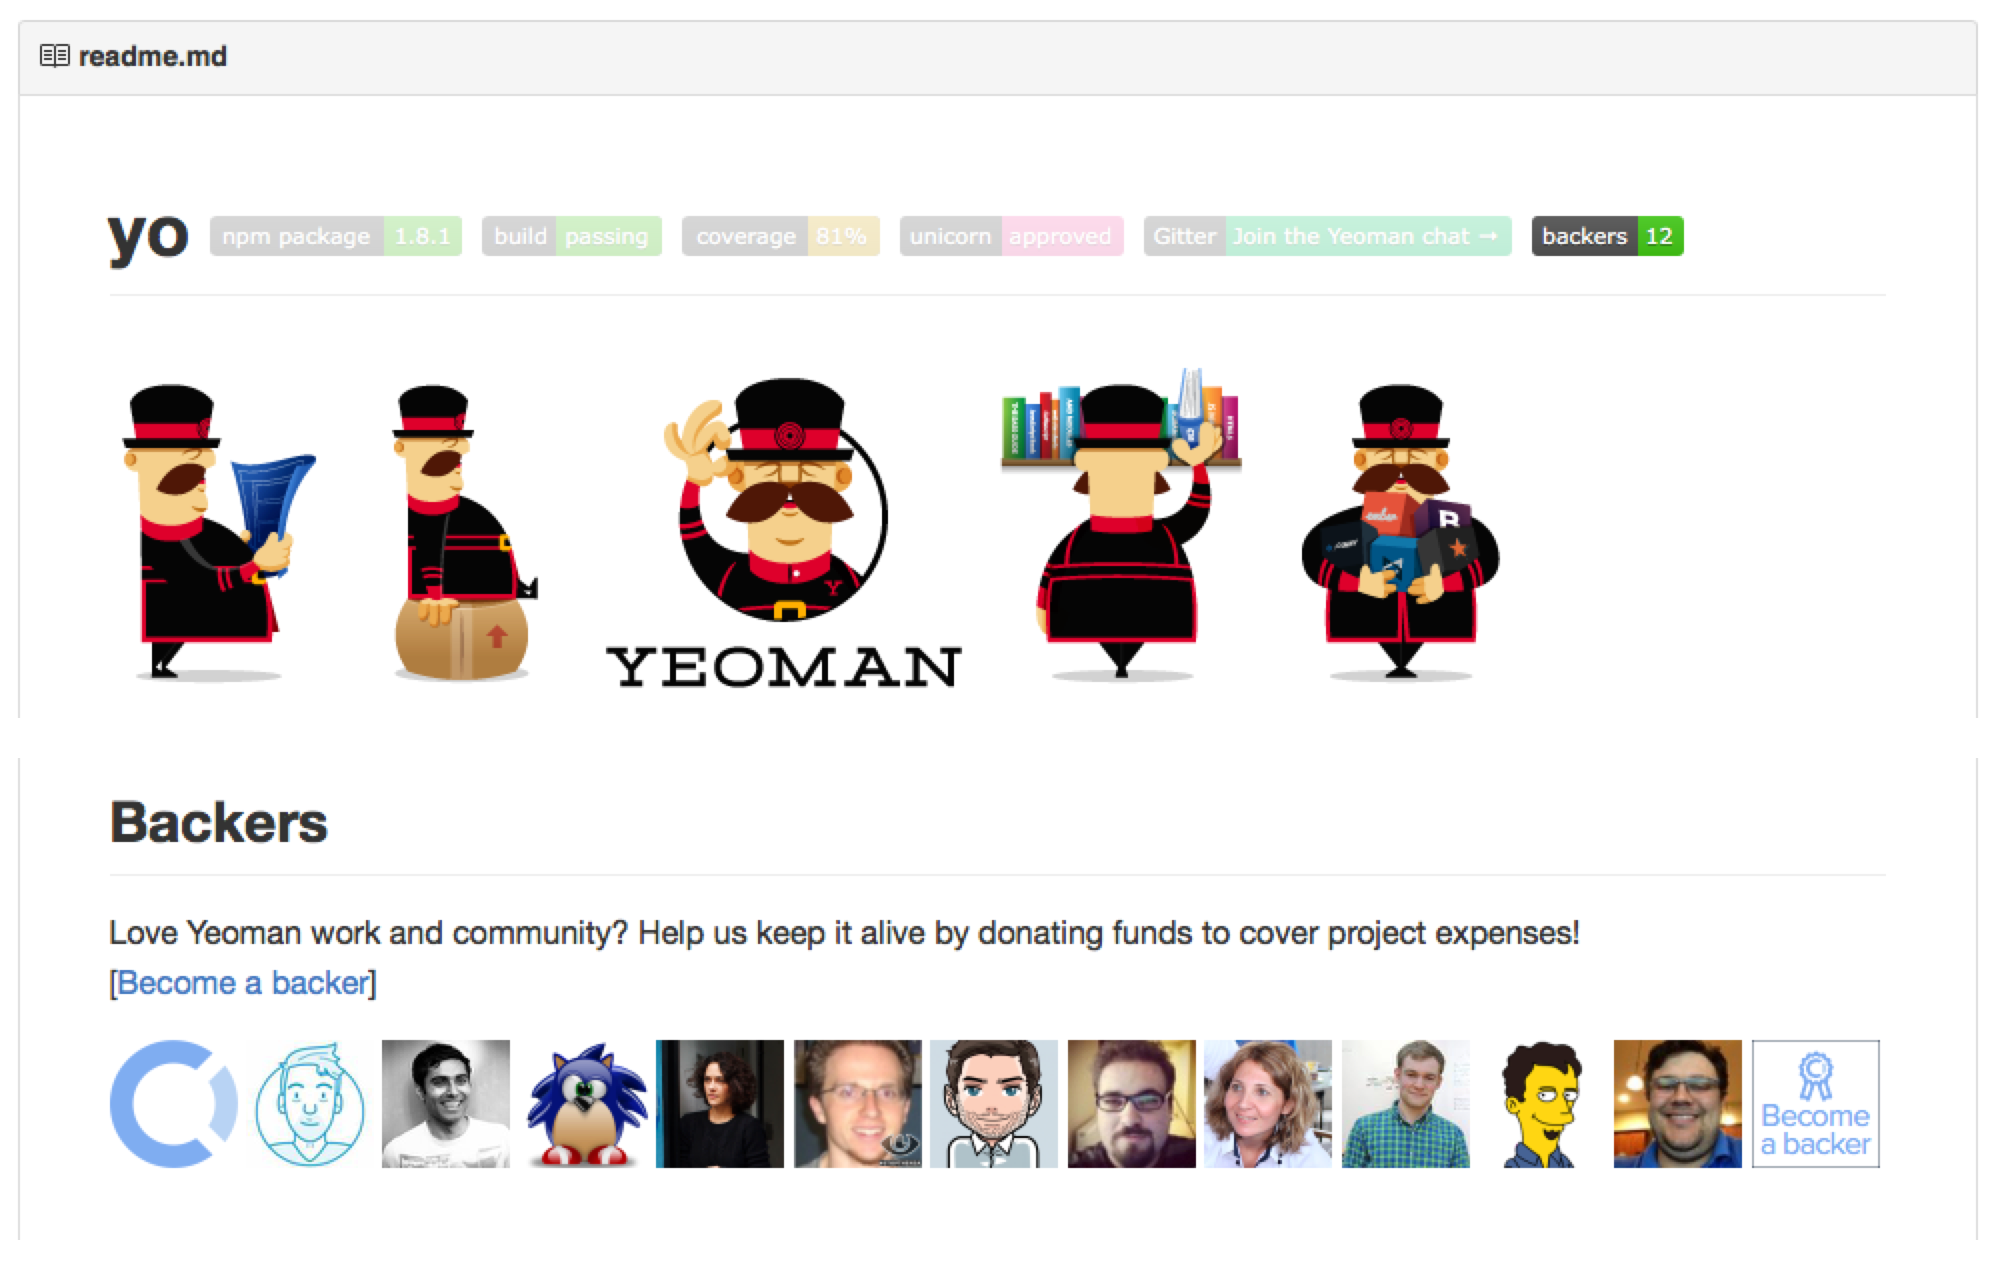 README.md of Yeoman (https://github.com/yeoman/yo). Backers show up automatically with a link to their website.